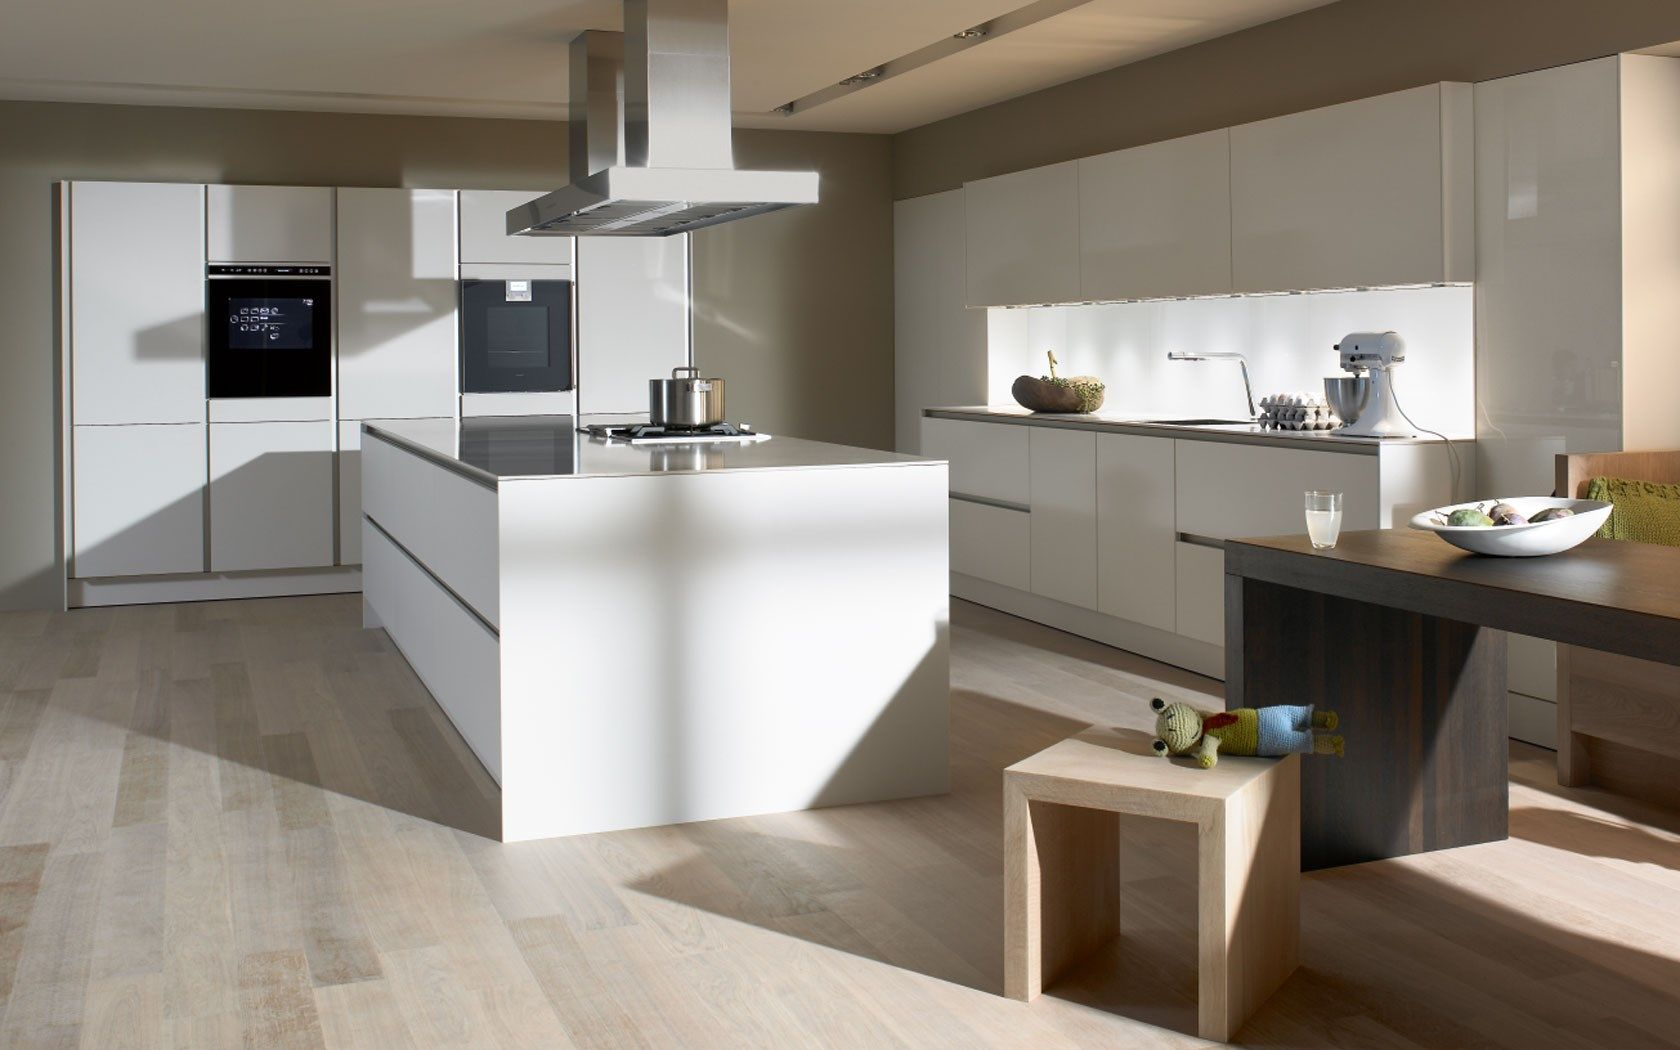 http://www.siematic.us/Modern-Kitchens/S2/siematic-kitchen-s2.htm ...